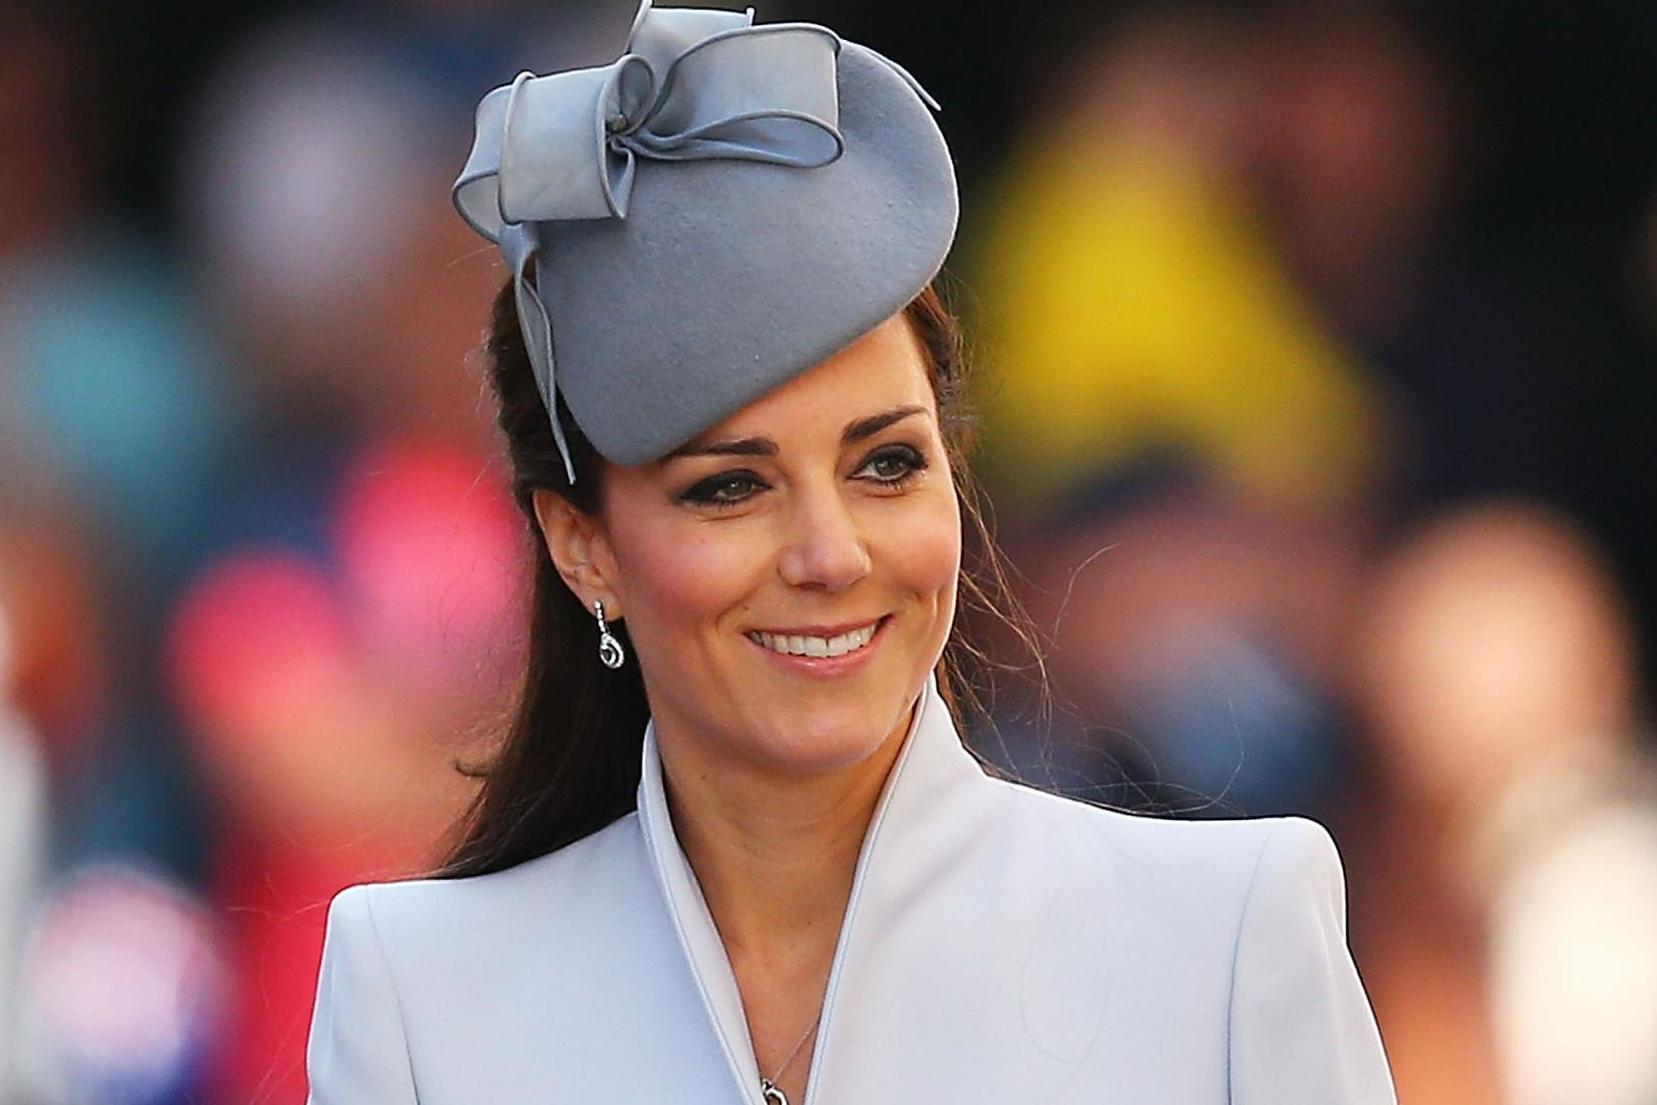 The one royal fashion protocol Kate Middleton repeatedly flouts